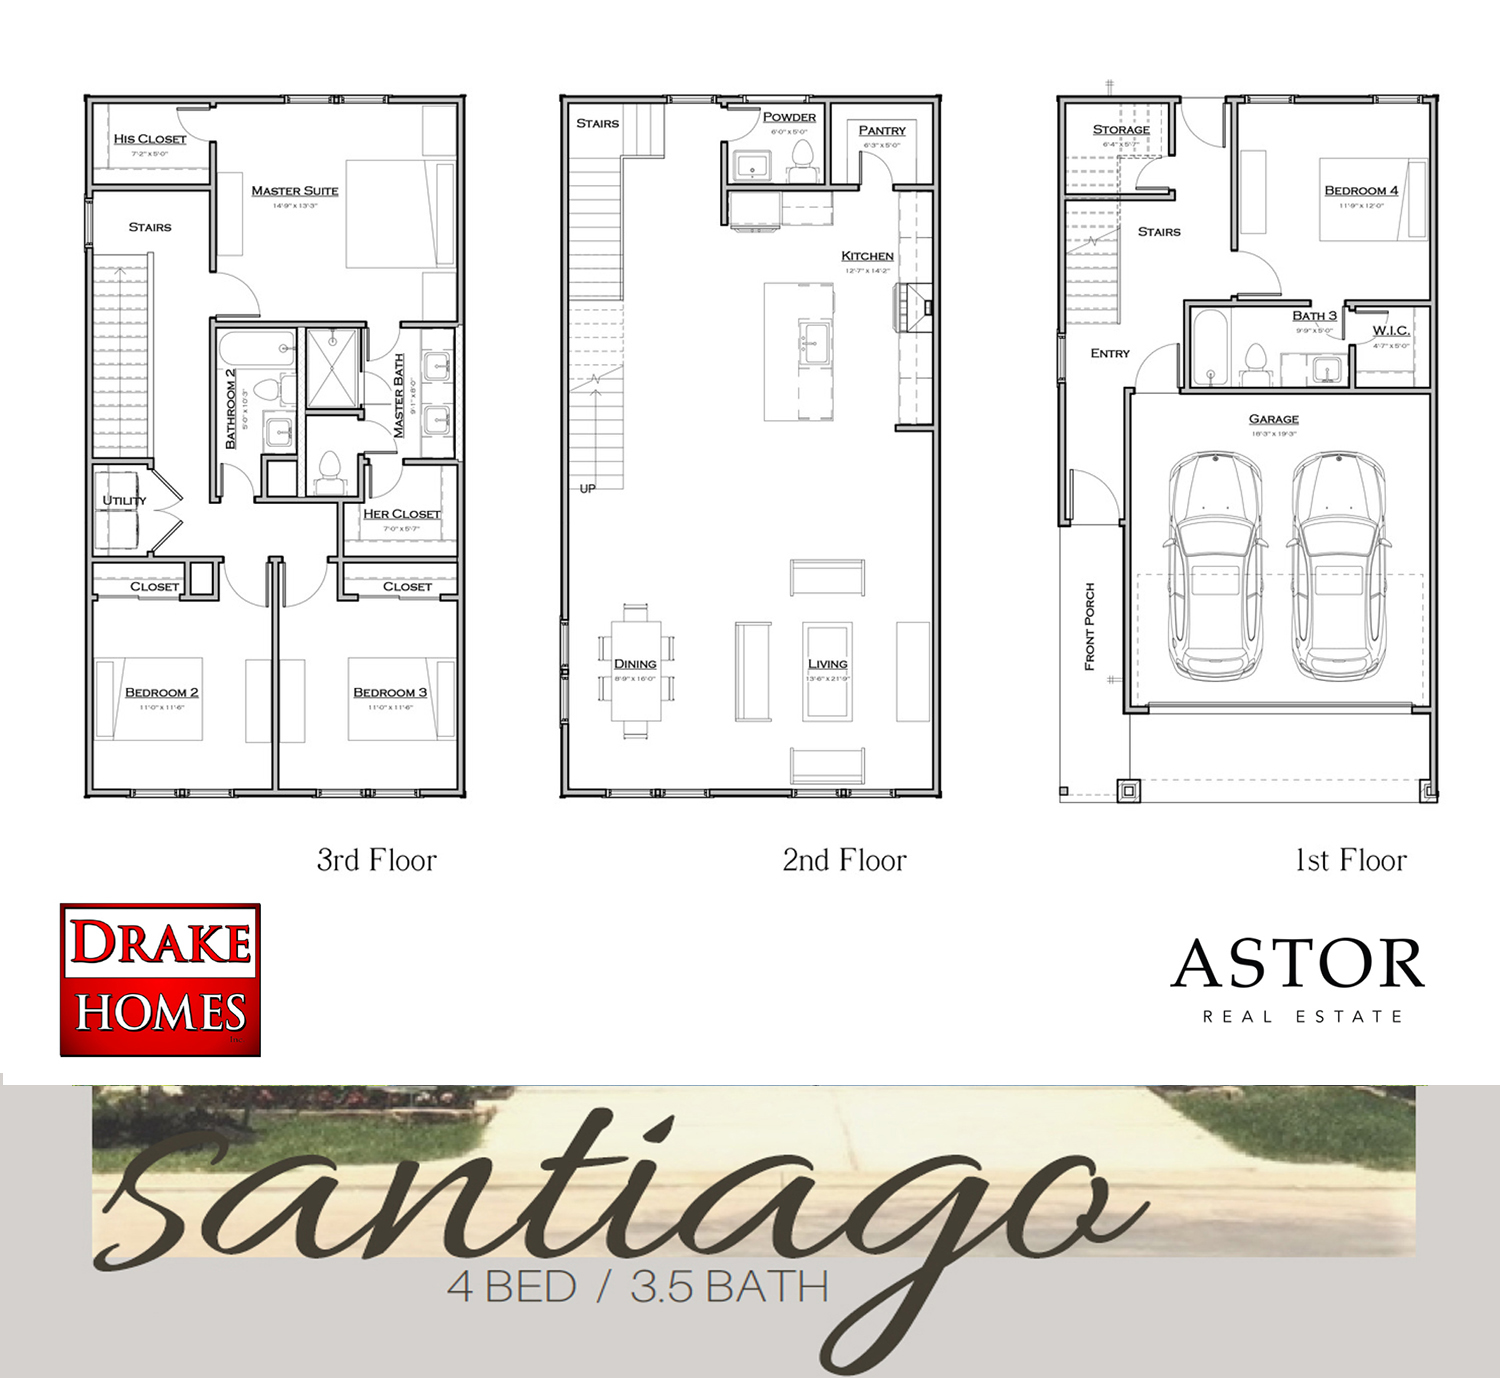 The Santiago Floor Plan